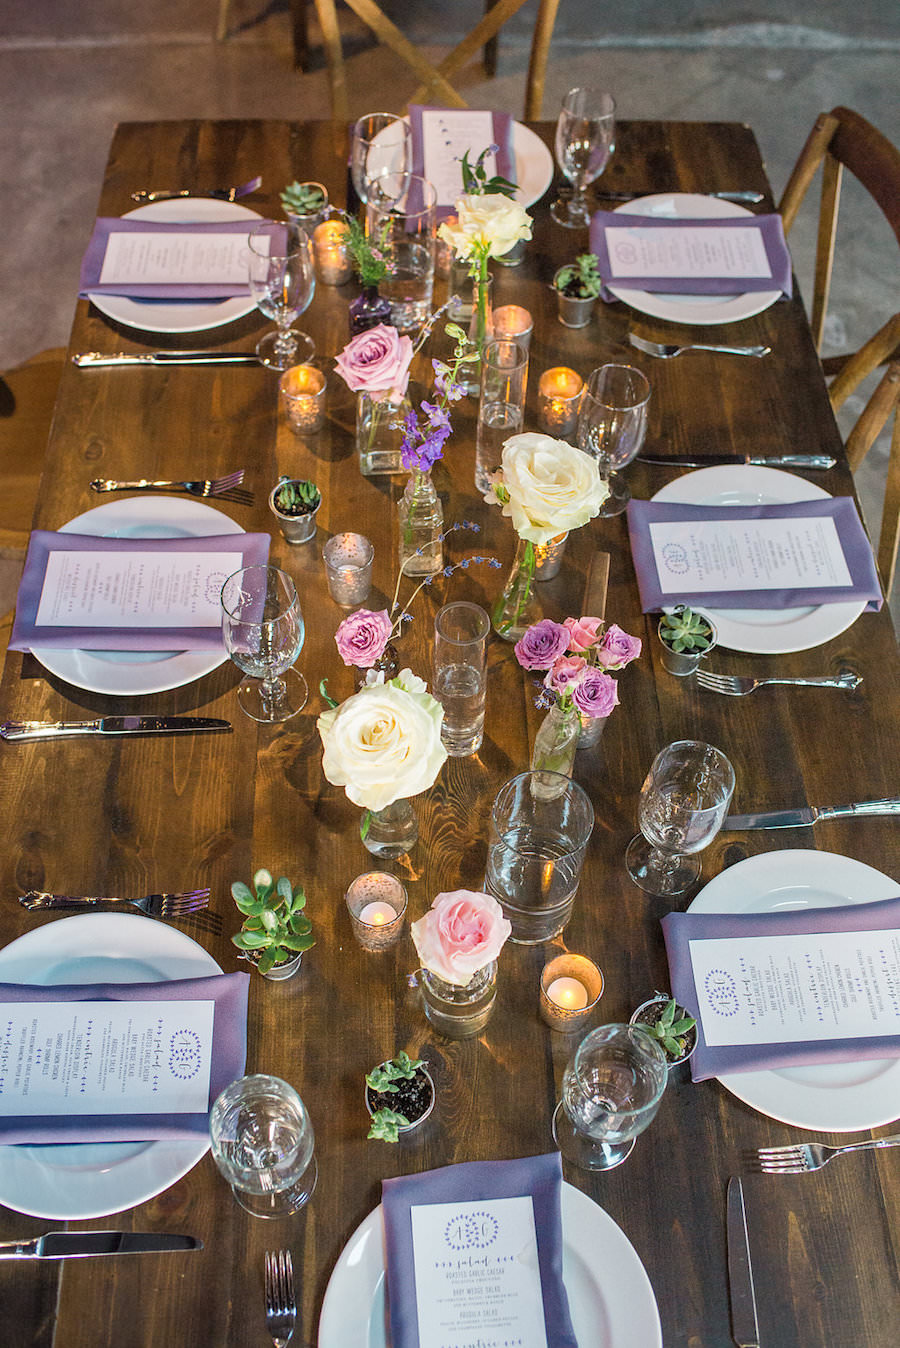 Rustic Garden Wedding Reception Table Decor with Farmhouse Table, Wooden Chairs, and Ivory and Purple Floral Centerpieces   Tampa Wedding Florist Andrea Layne Floral Designs